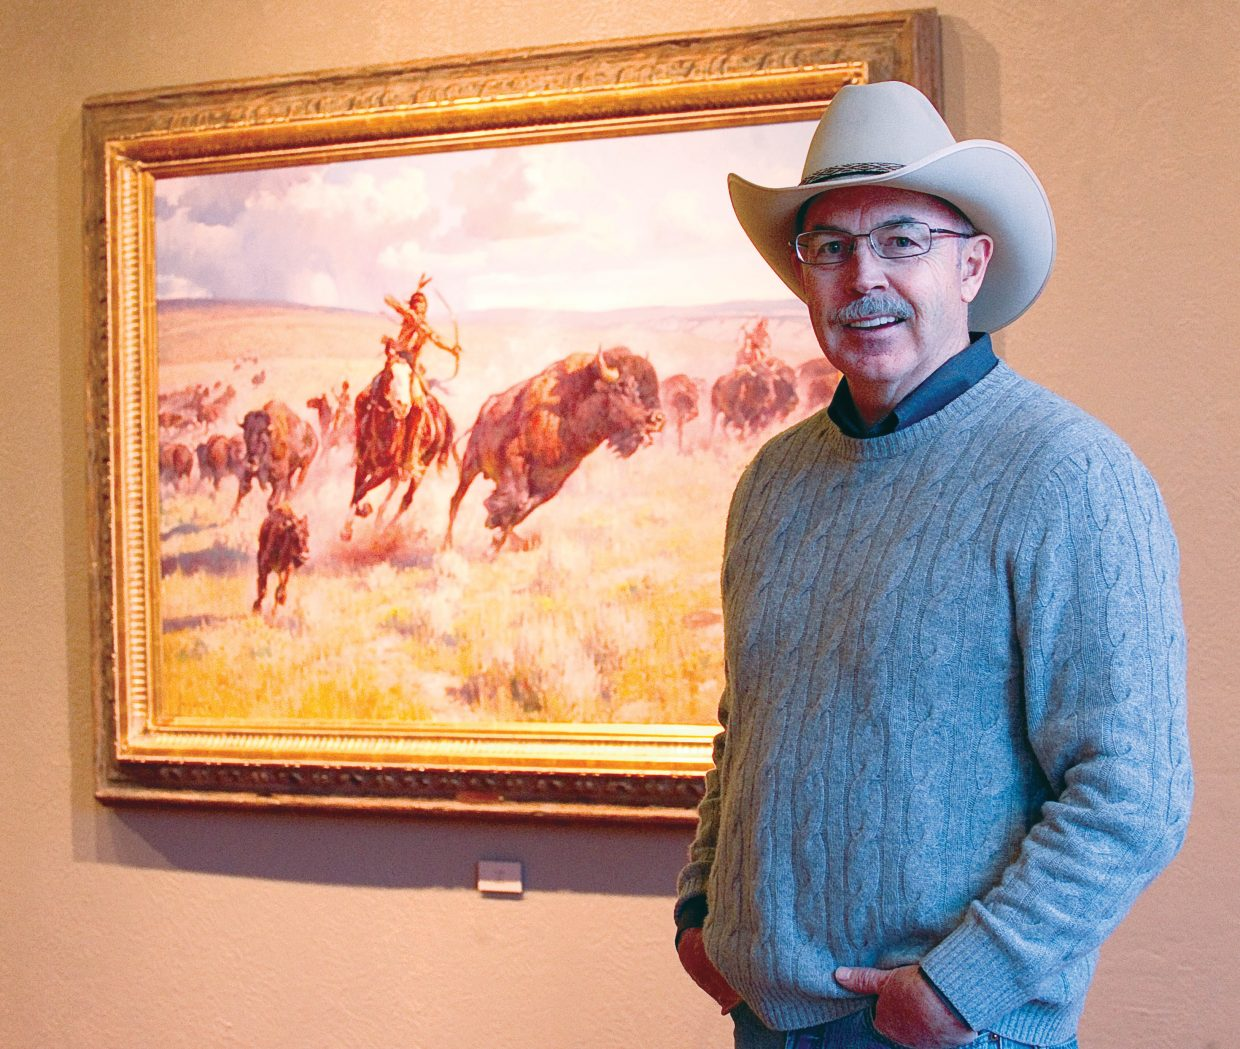 Painter Jim Norton's work, which reflects the Western lifestyle, is featured at Steamboat Art Museum. Norton said he sees the horses and landscapes in his work as symbols of freedom.